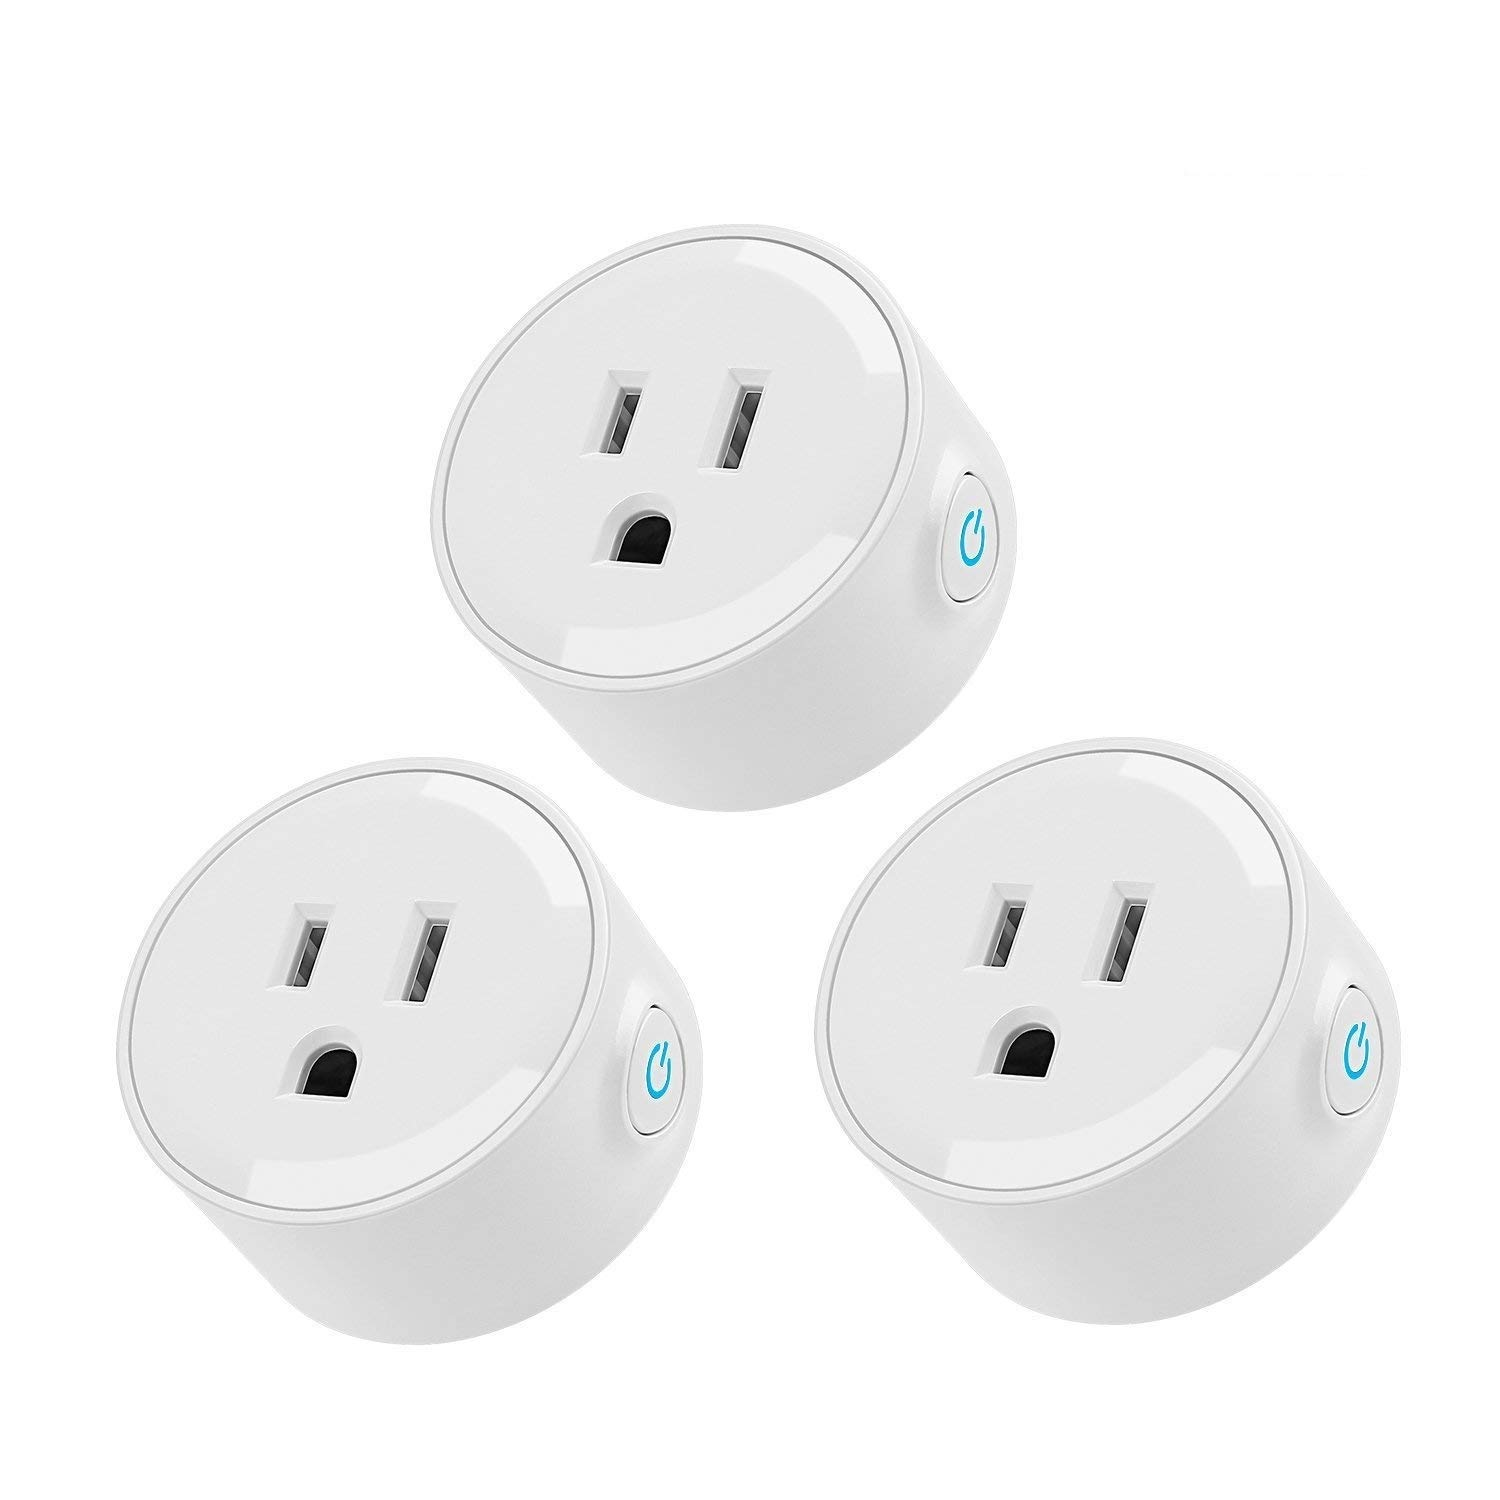 LITEdge Smart Plug, Compatible with Alexa, Wi-Fi Accessible Power Outlet, No Hub Needed, Control with App on Phone, Pack of 3